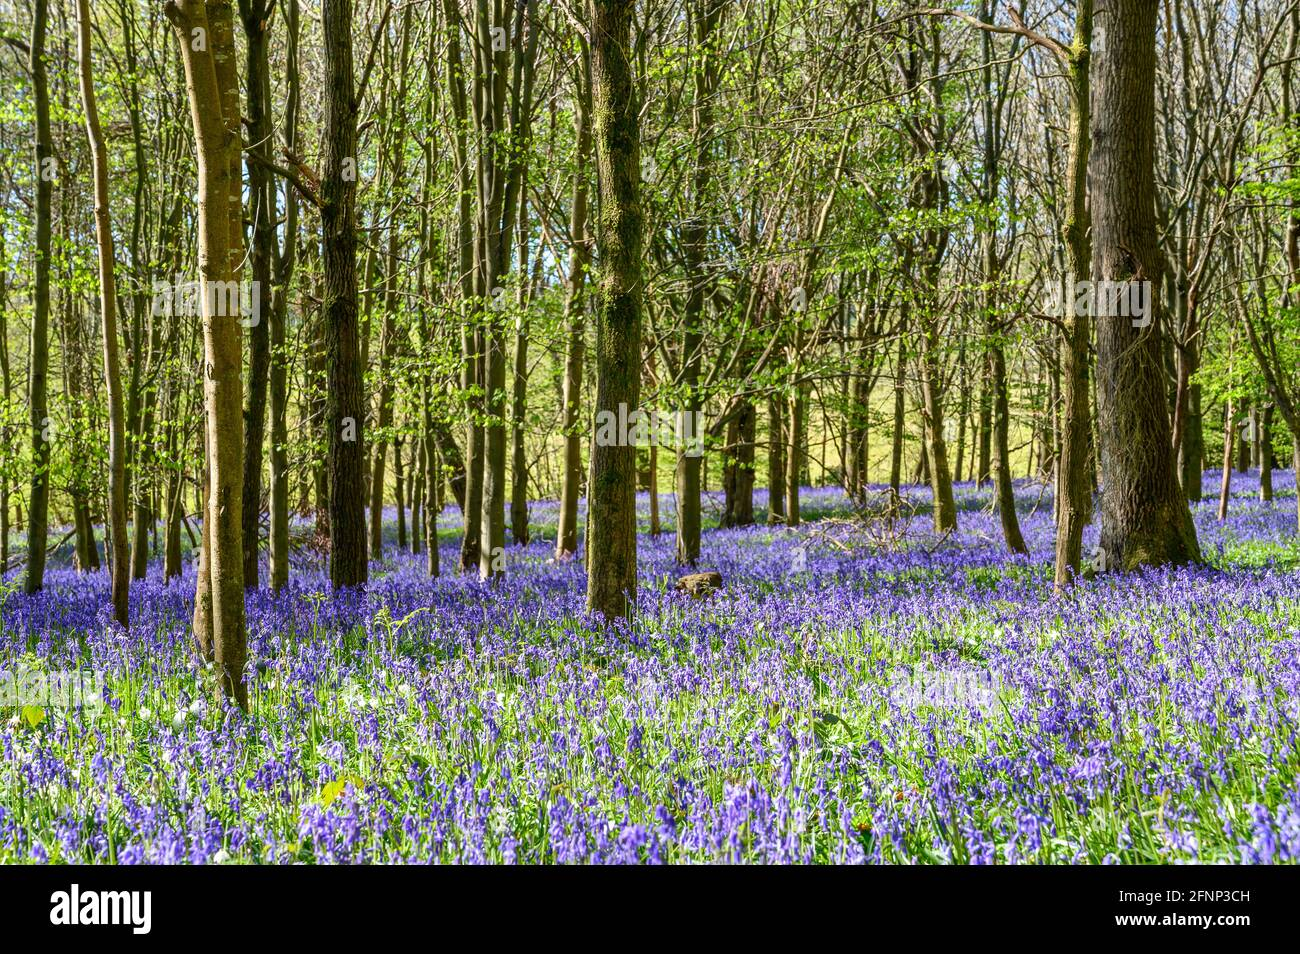 Morning light streaming in woodland with young trees and ground covered in bluebells. Walstead, West Sussex, England. Stock Photo